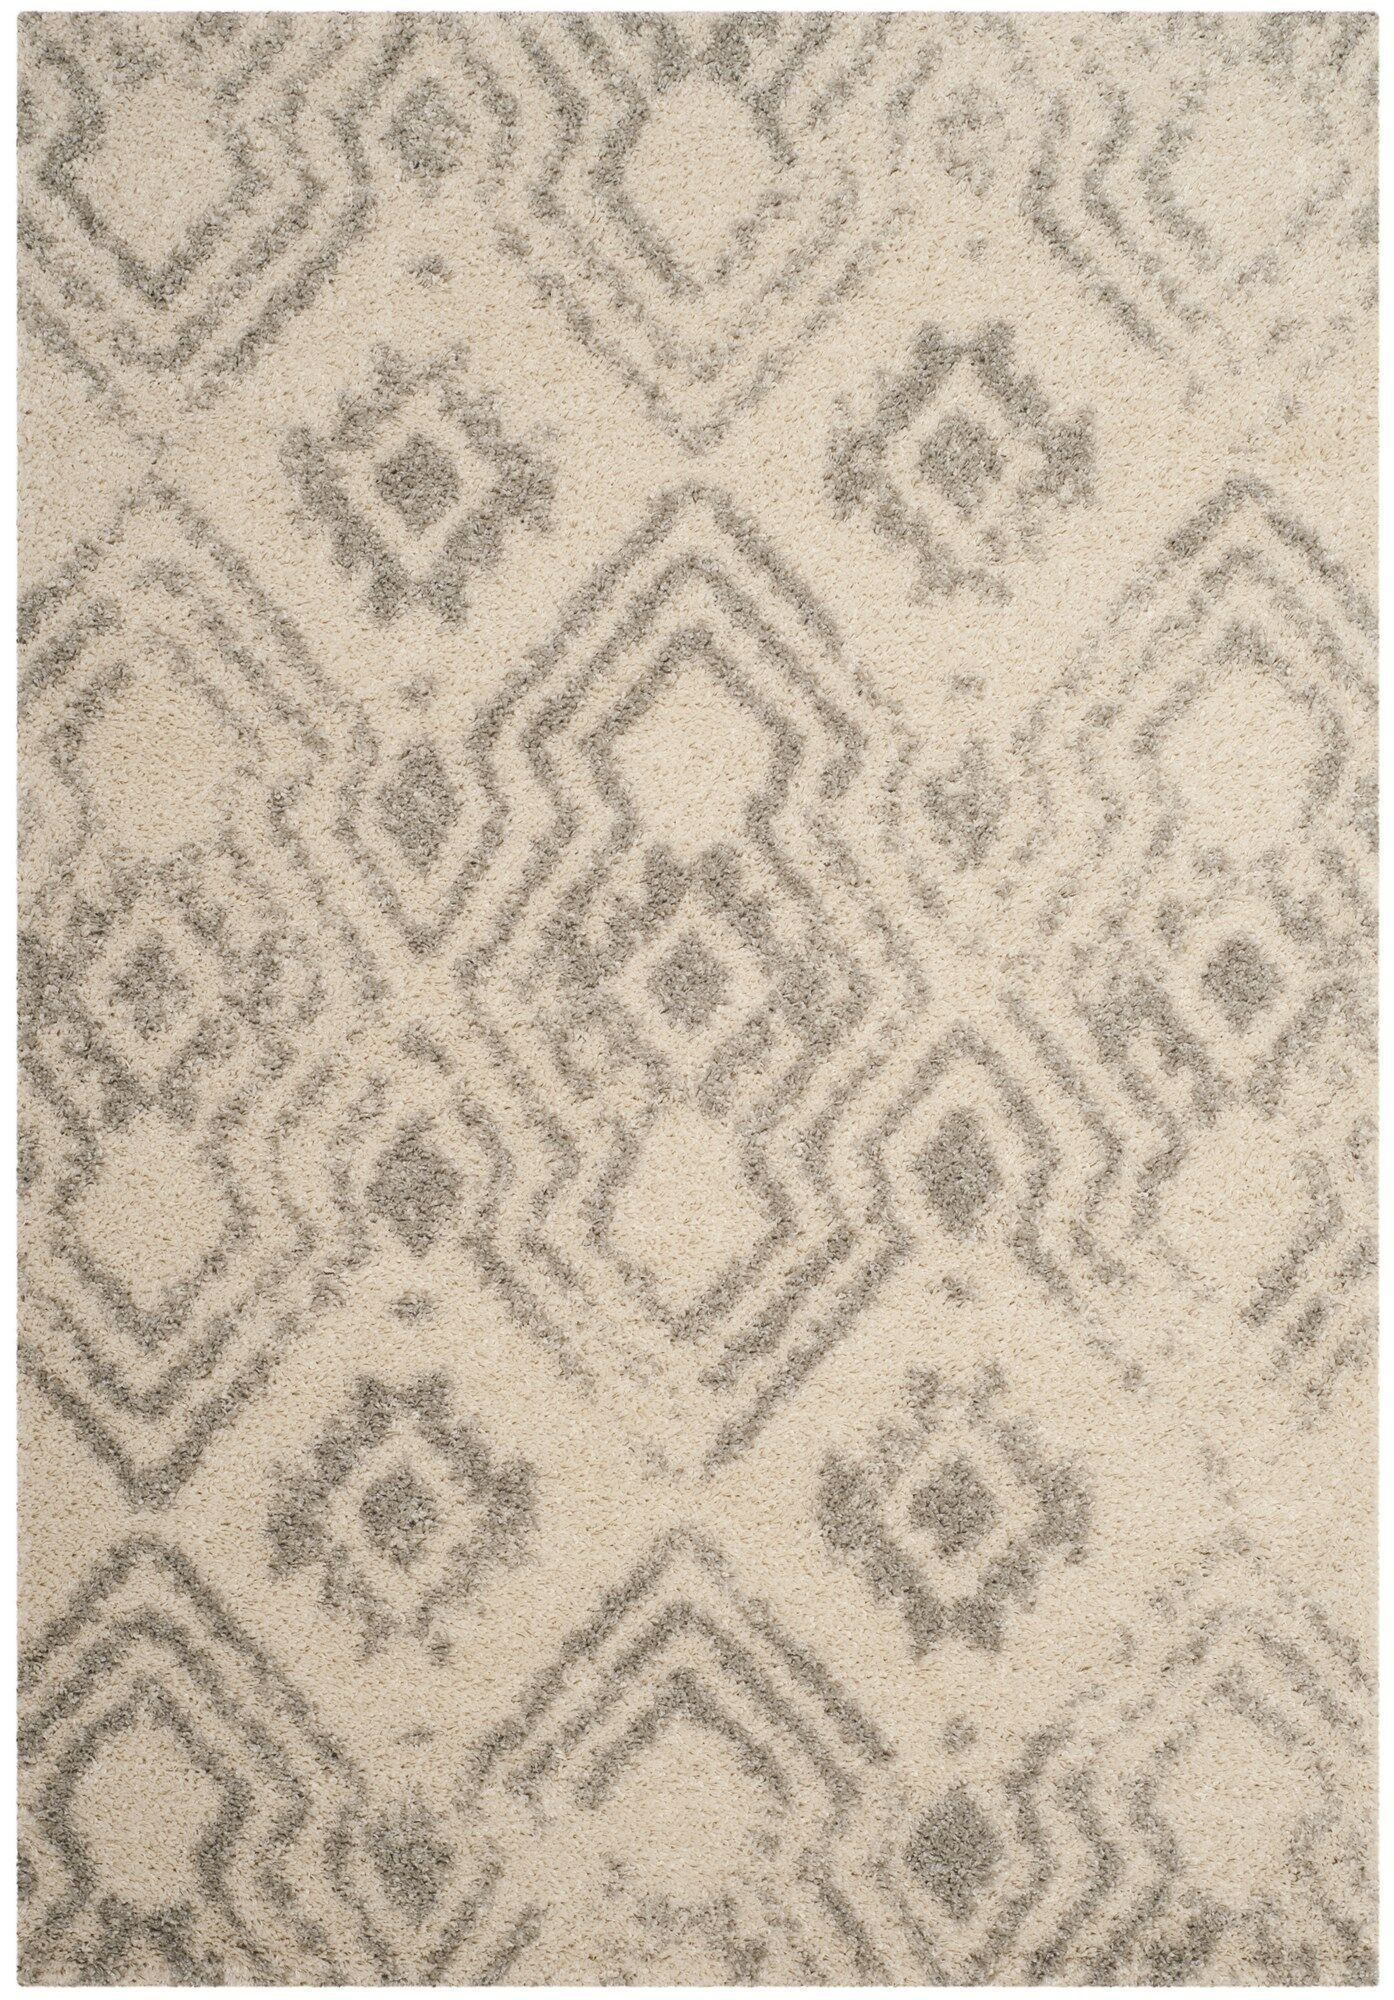 Amicus Gray/Beige Area Rug Rug Size: Rectangle 8' x 10'